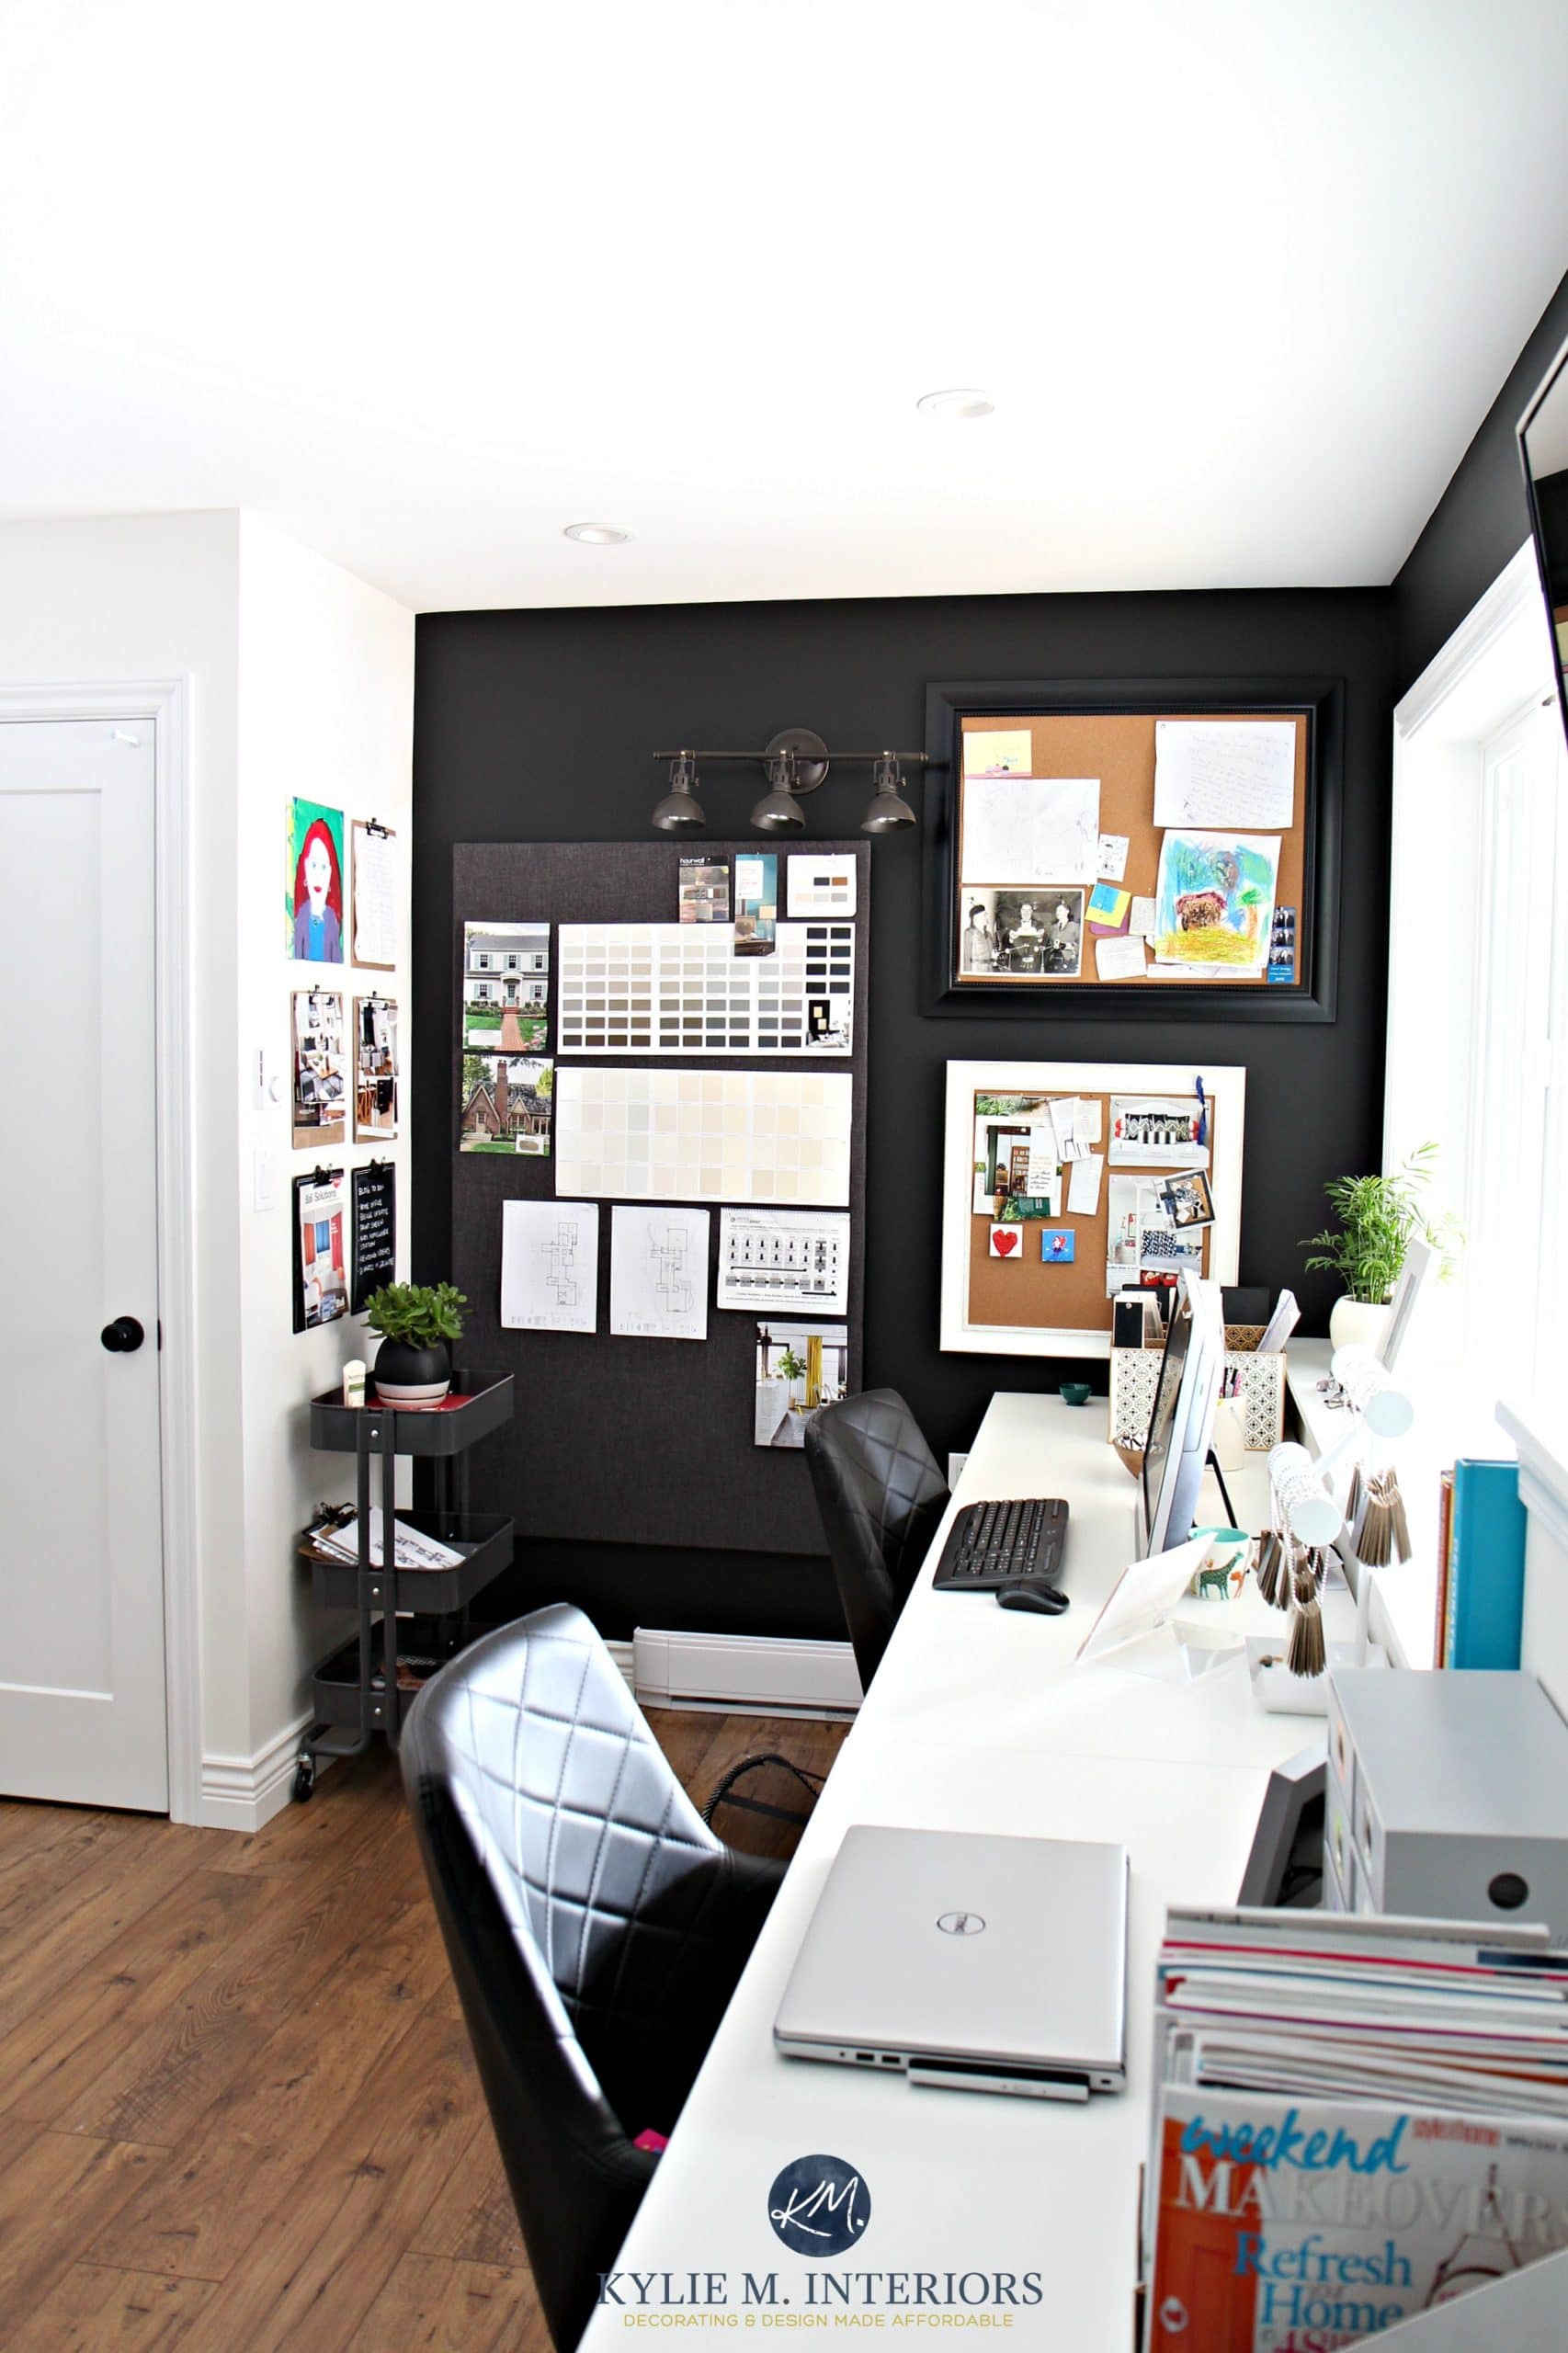 Home office decorating ideas by kylie m interiors corkboards and home office decorating ideas by kylie m interiors corkboards and tricorn black feature or accent wall sciox Choice Image